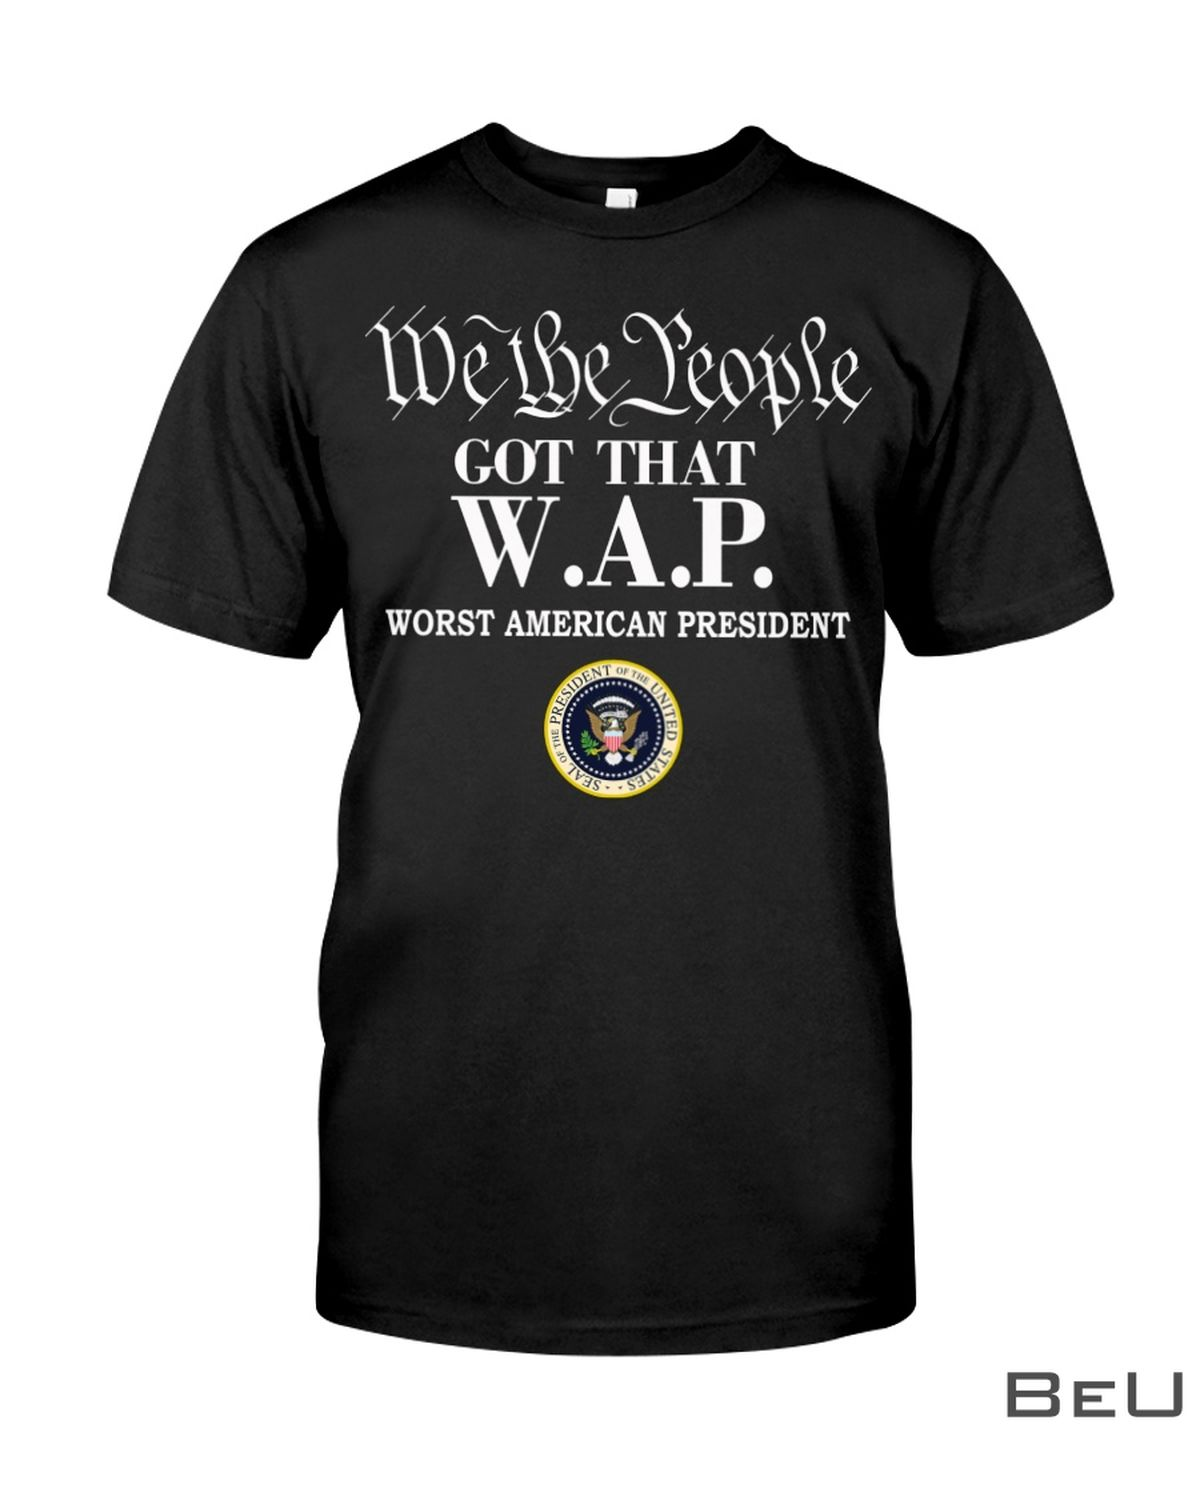 We The People Got That W.A.P Worst American President Shirt